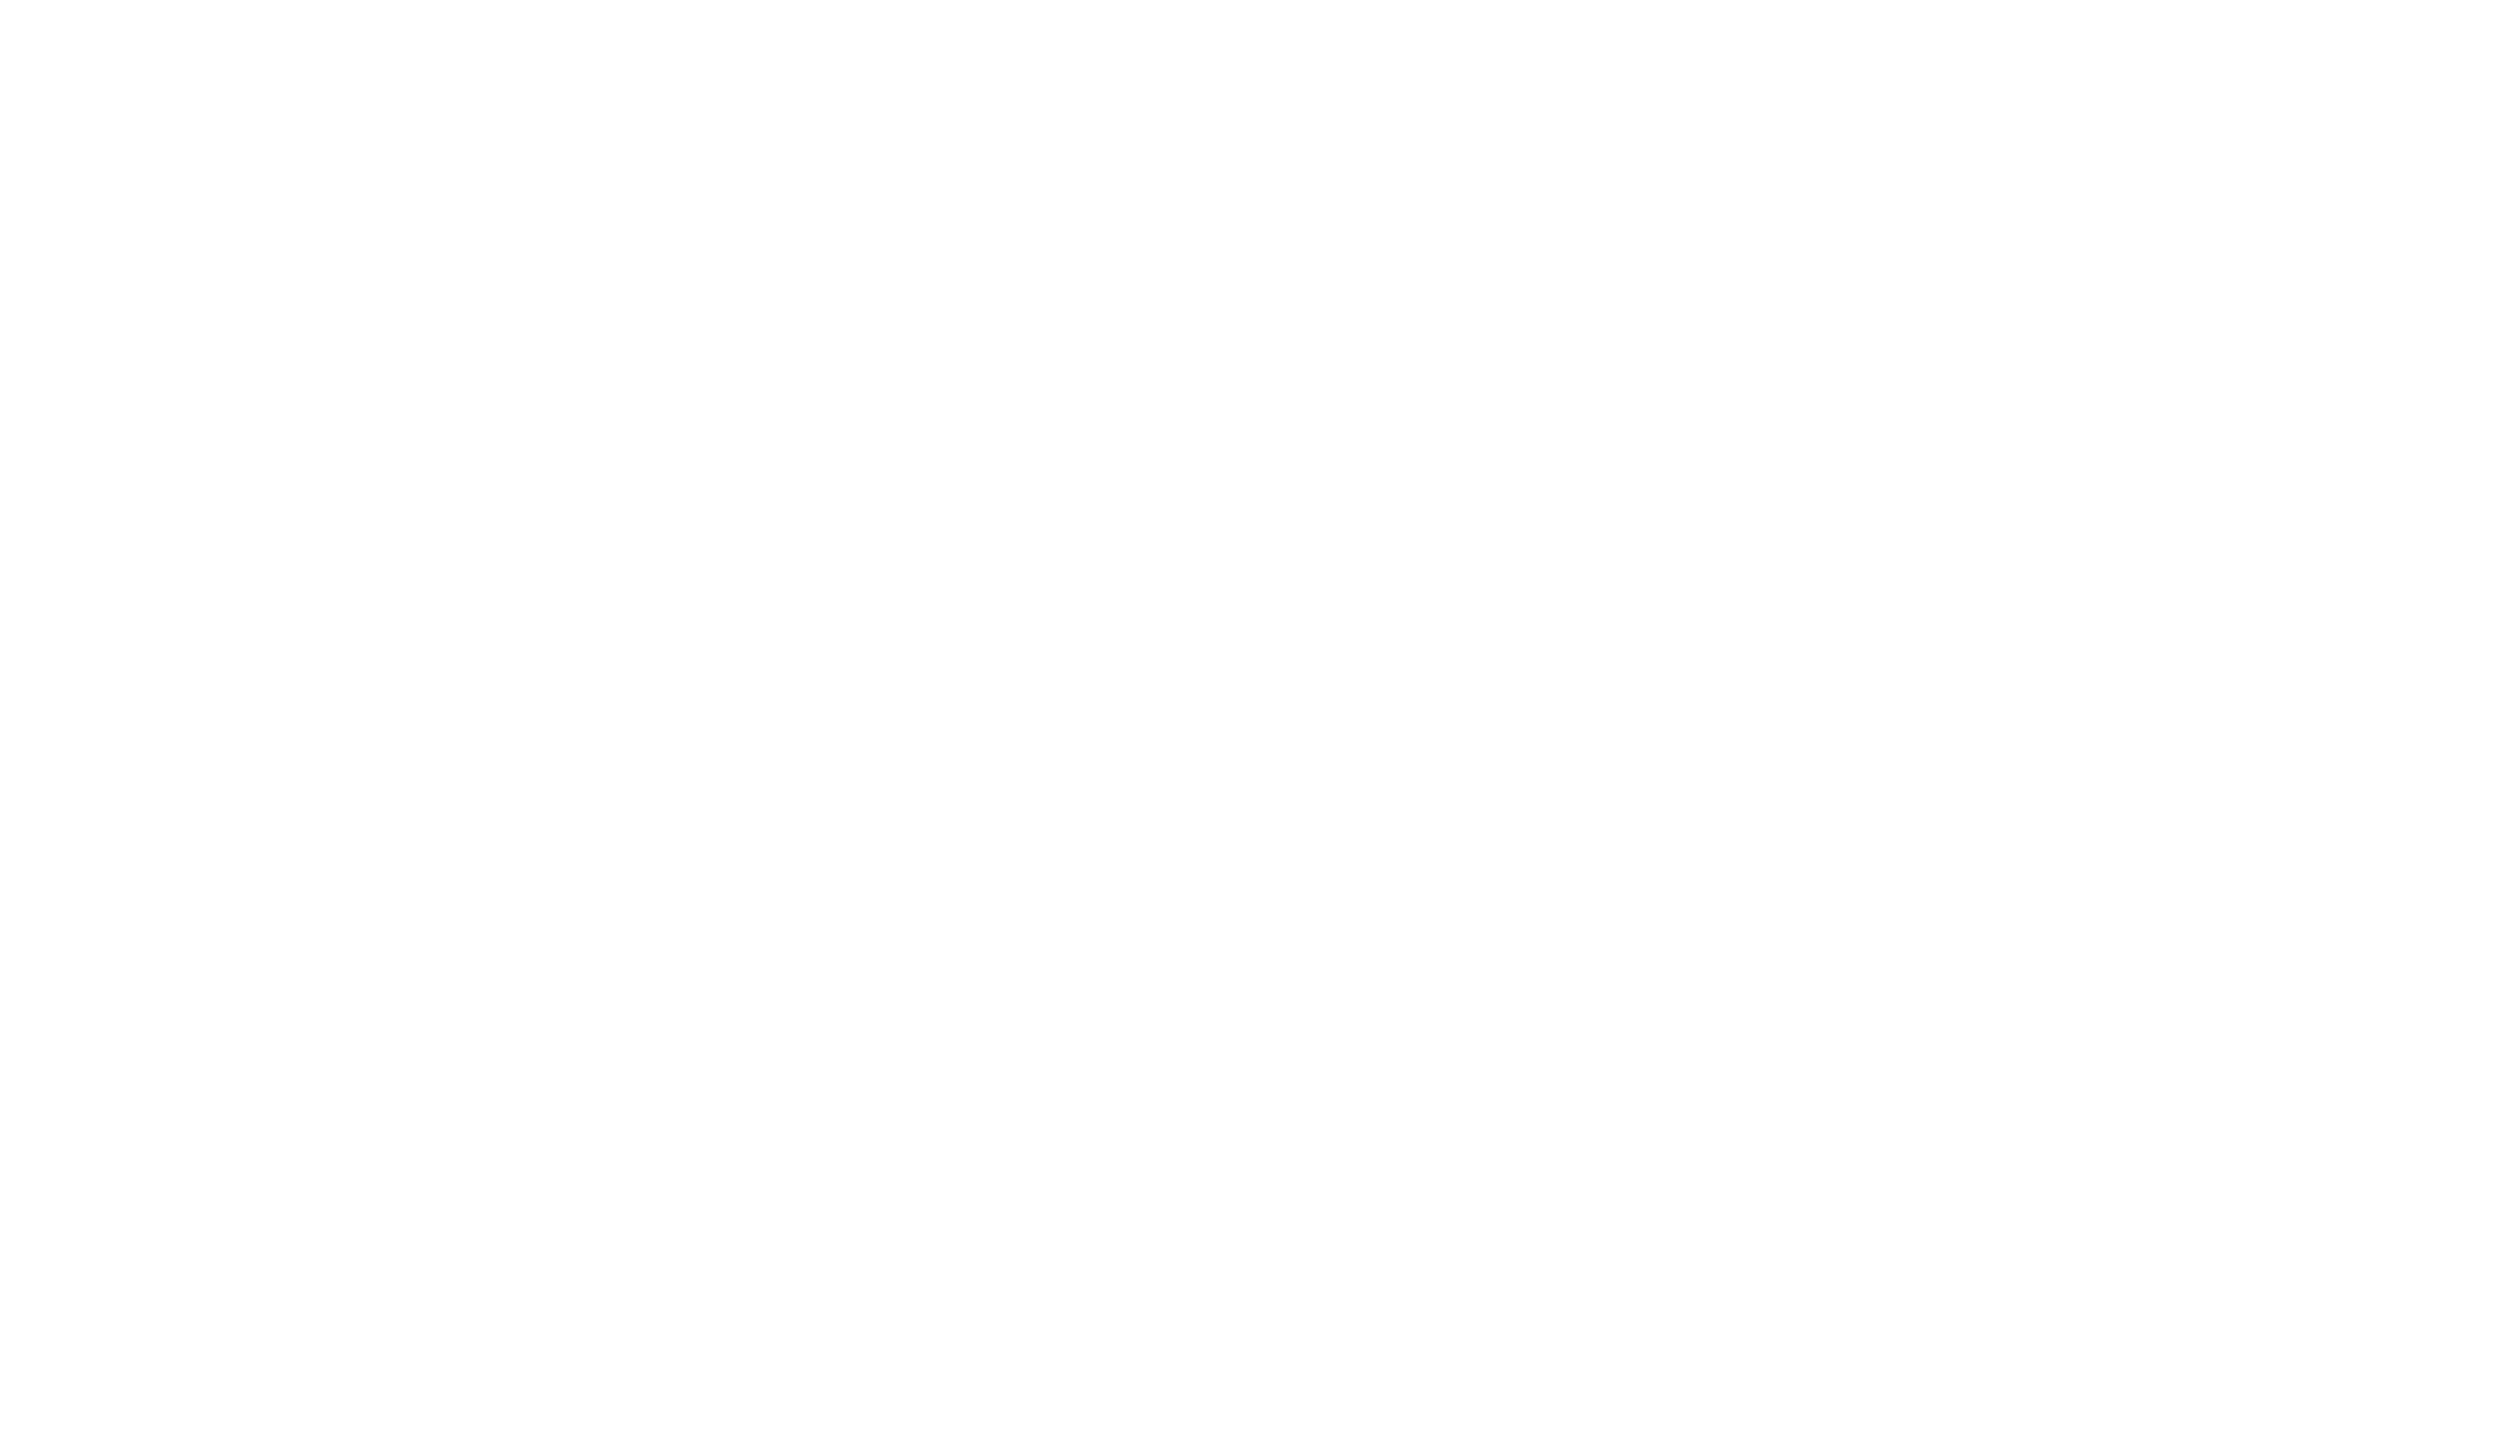 summerscheduleLOGO.png